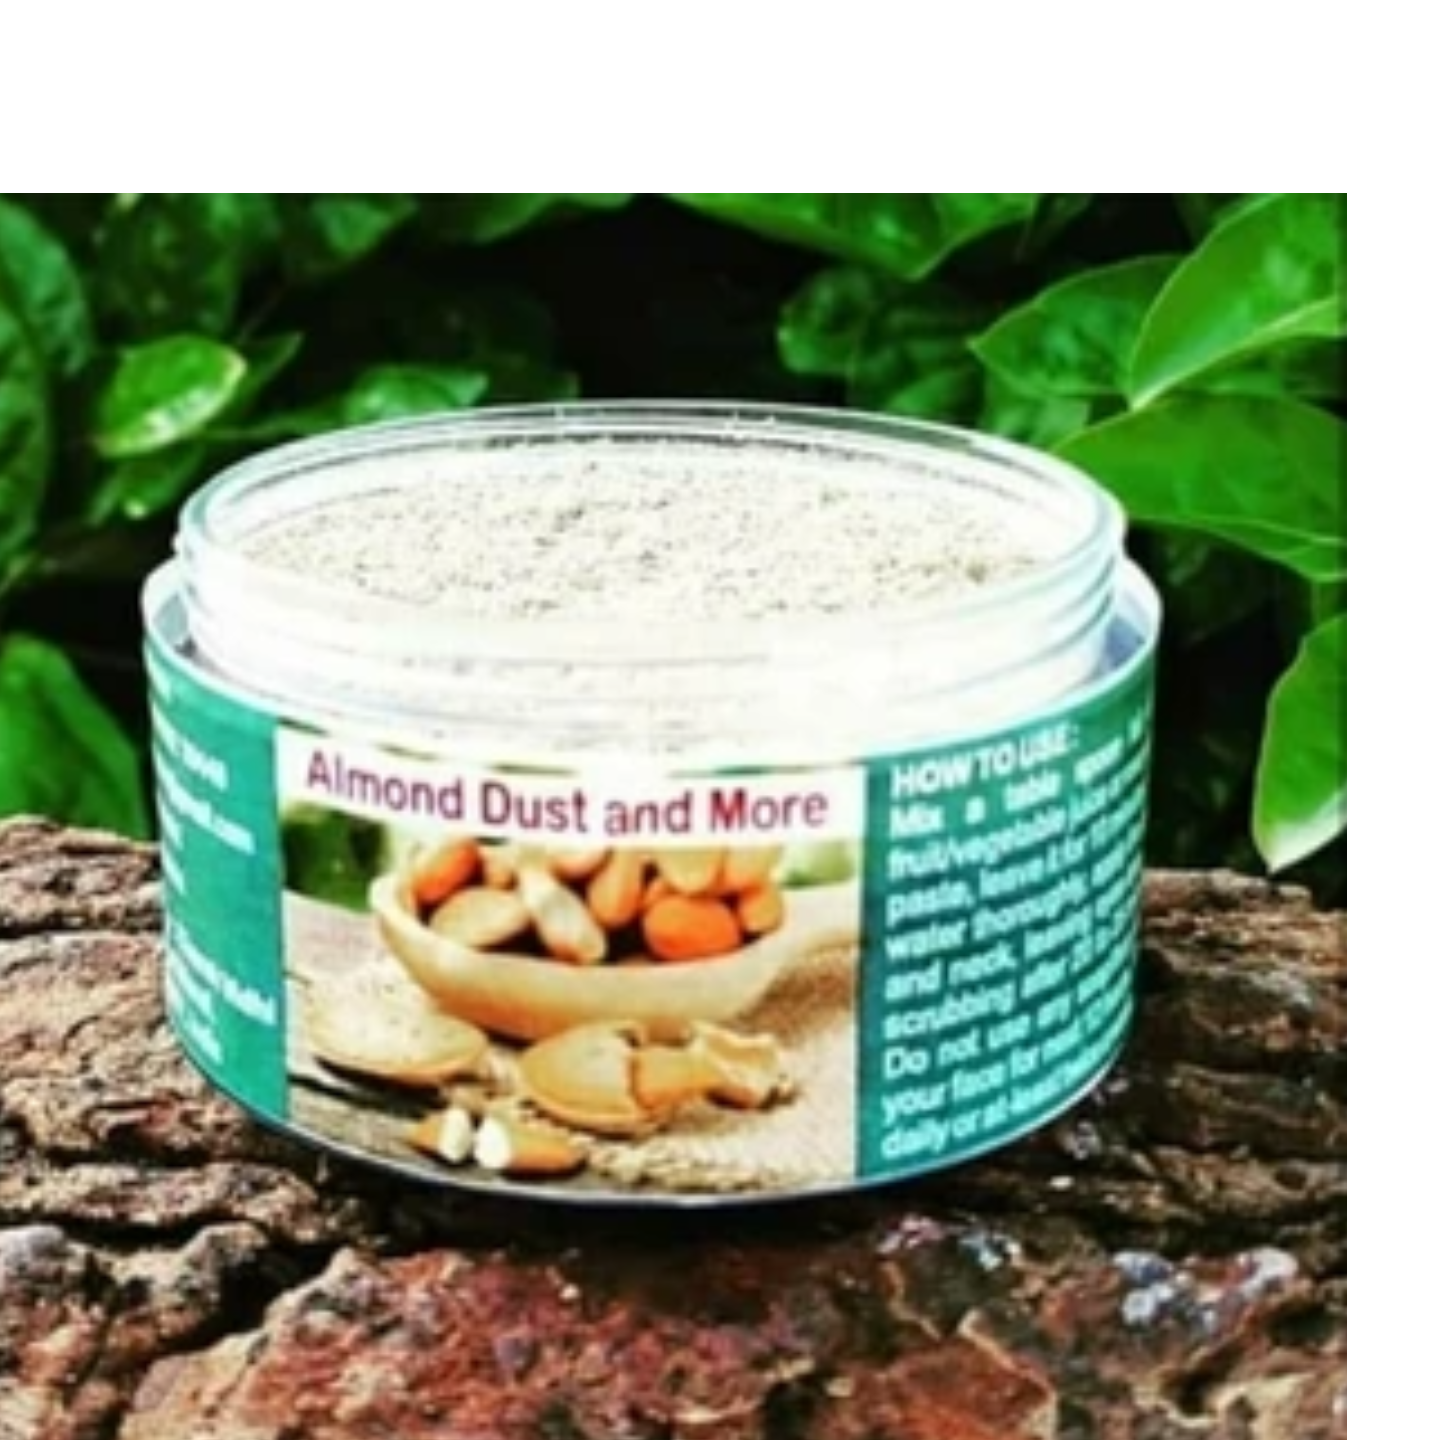 Almond Dust And More